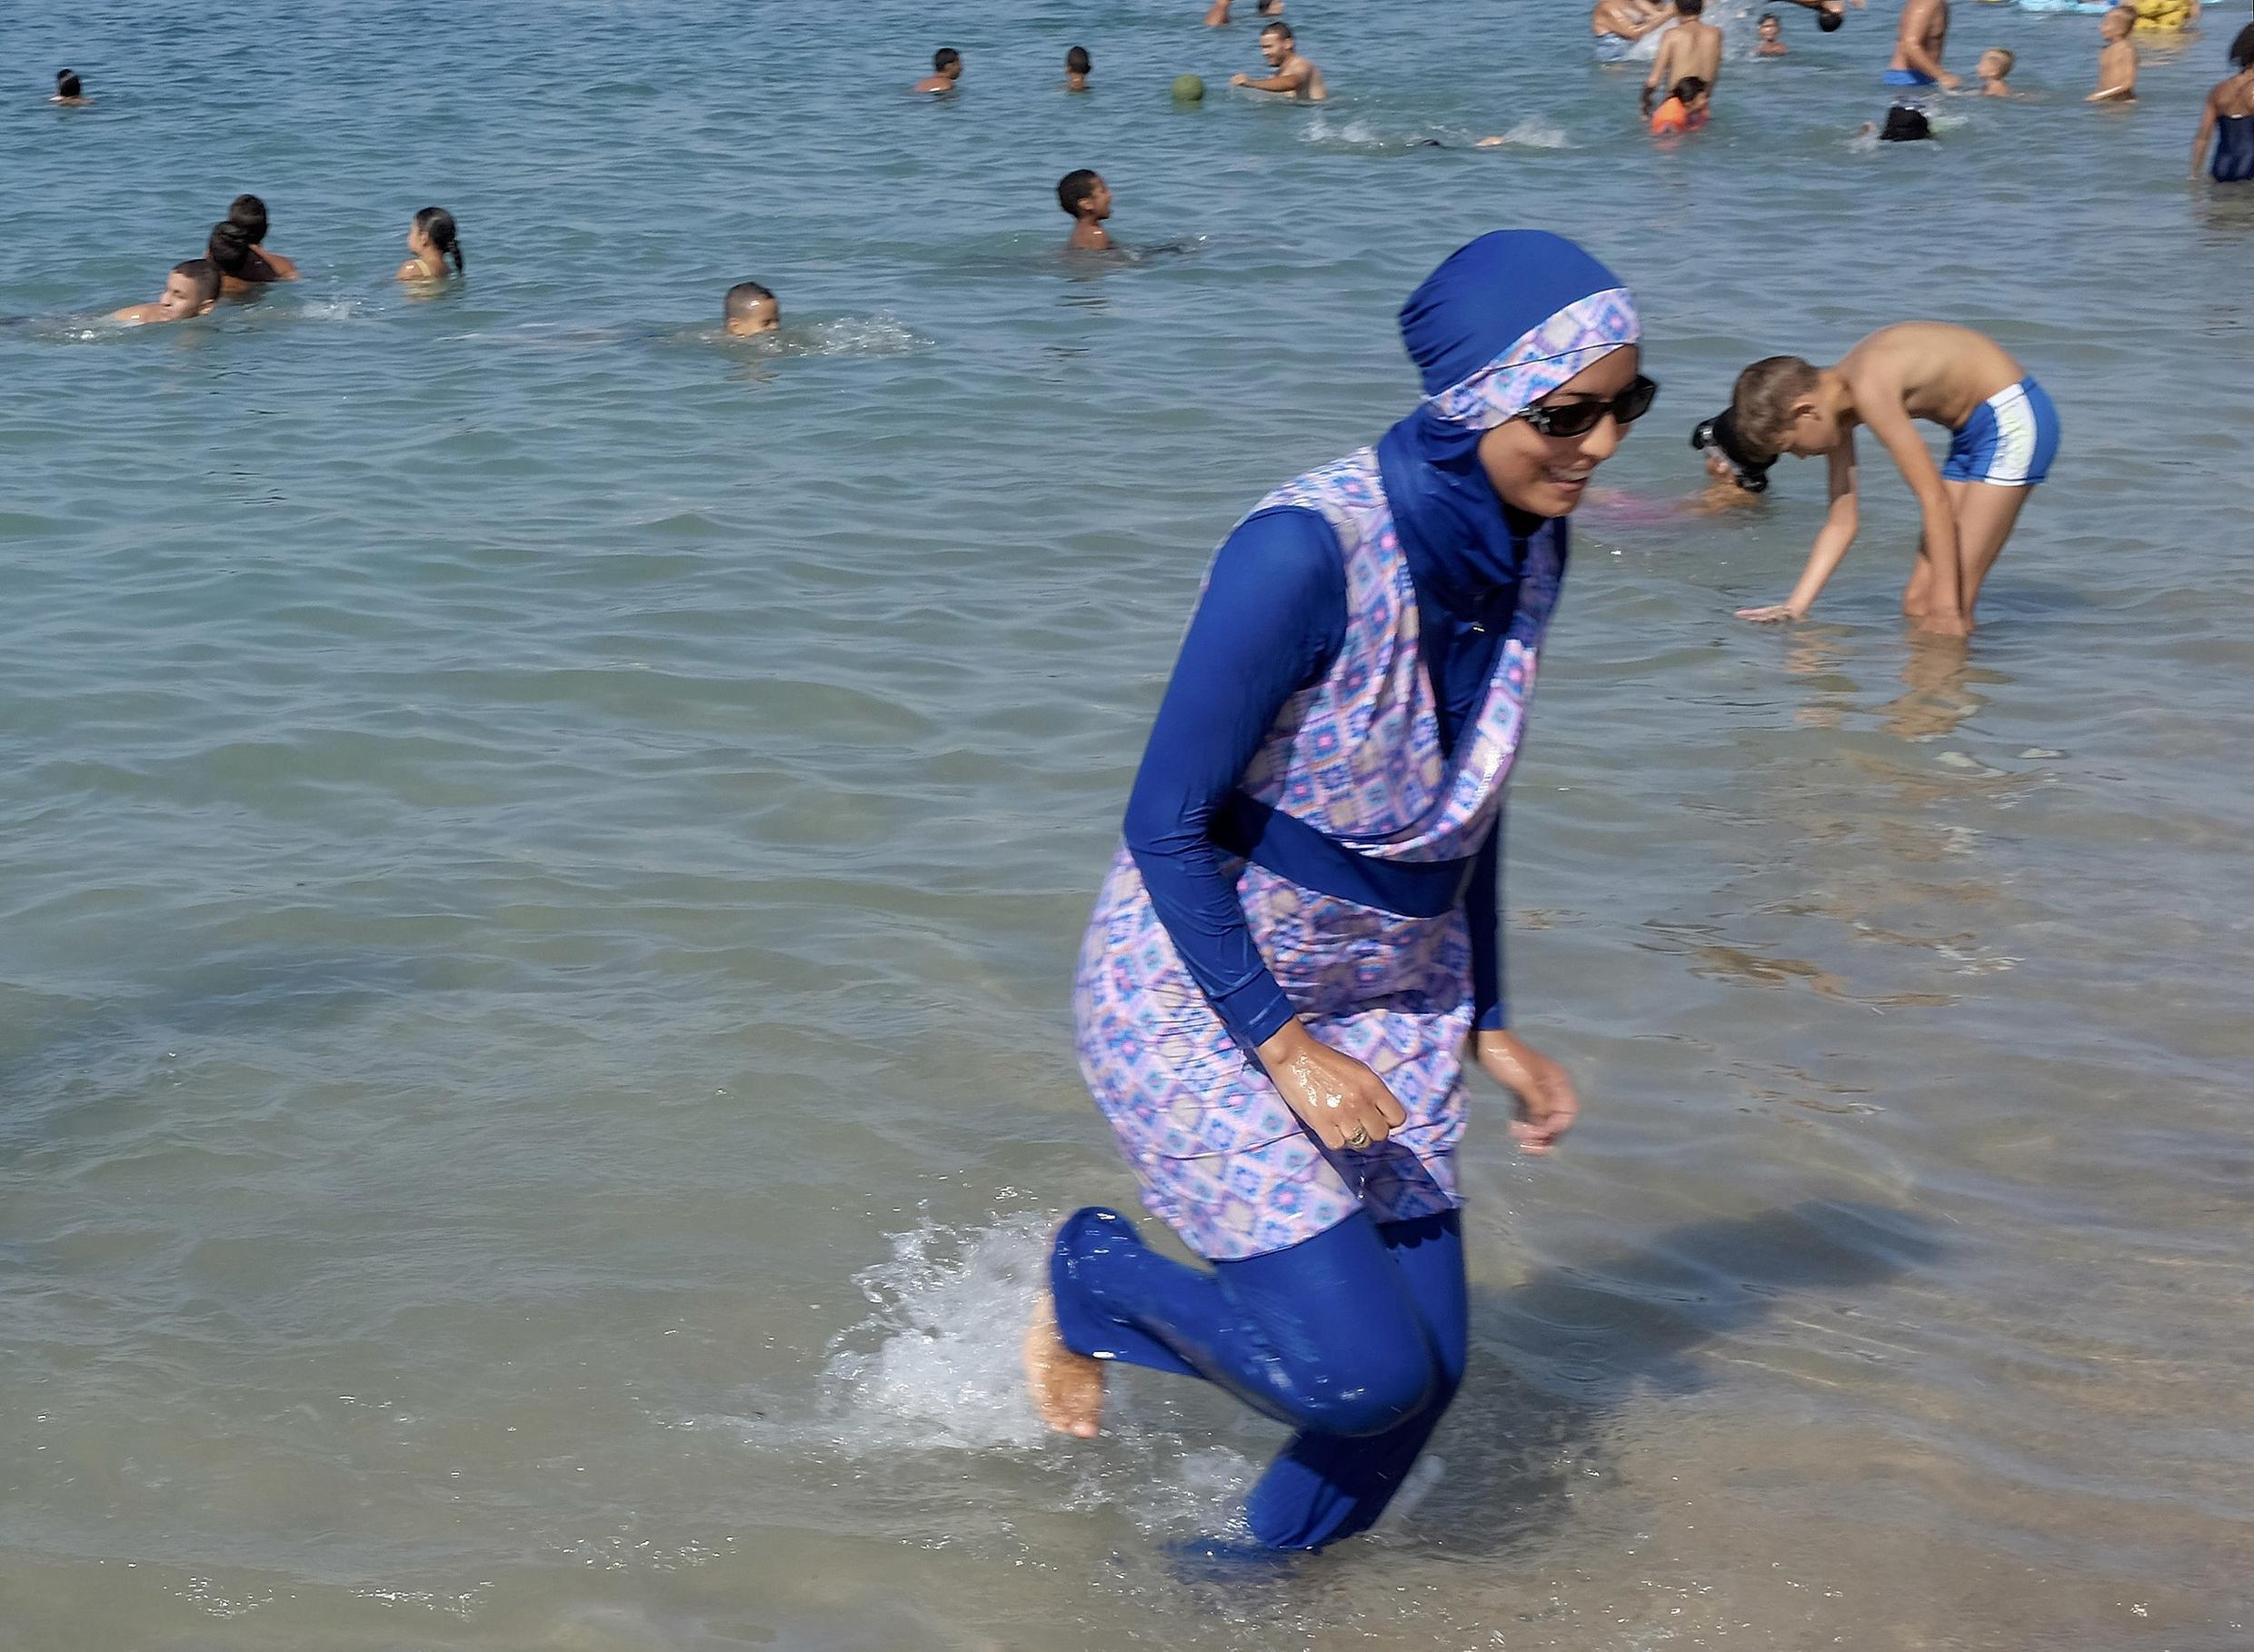 A woman wearing a burkini walks in the water on a beach in Marseille on 27 August, 2016.